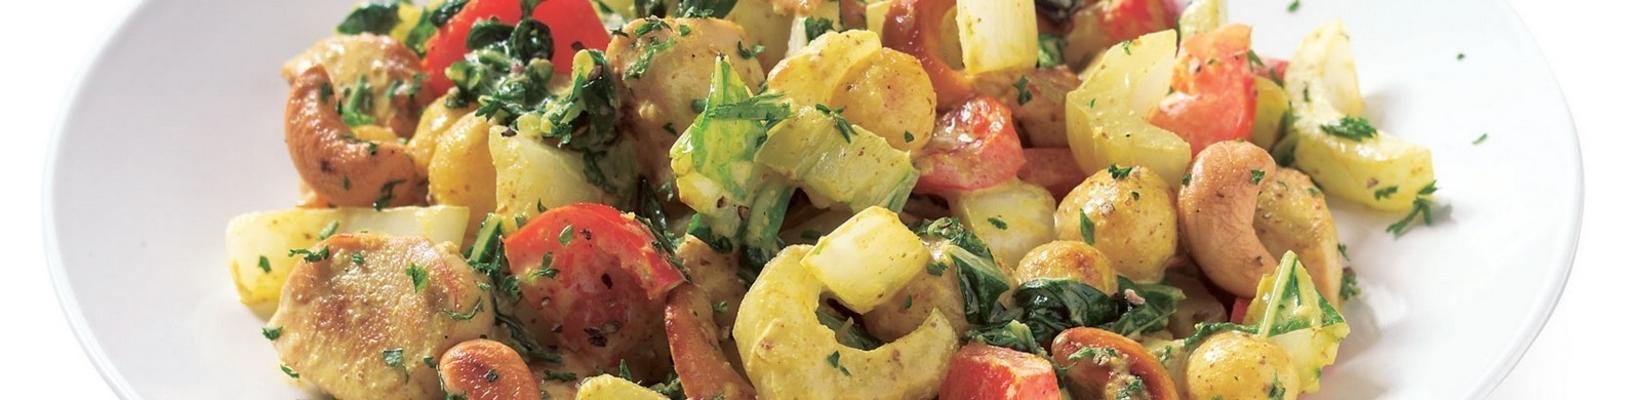 chicken with potatoes in mustard-nut sauce